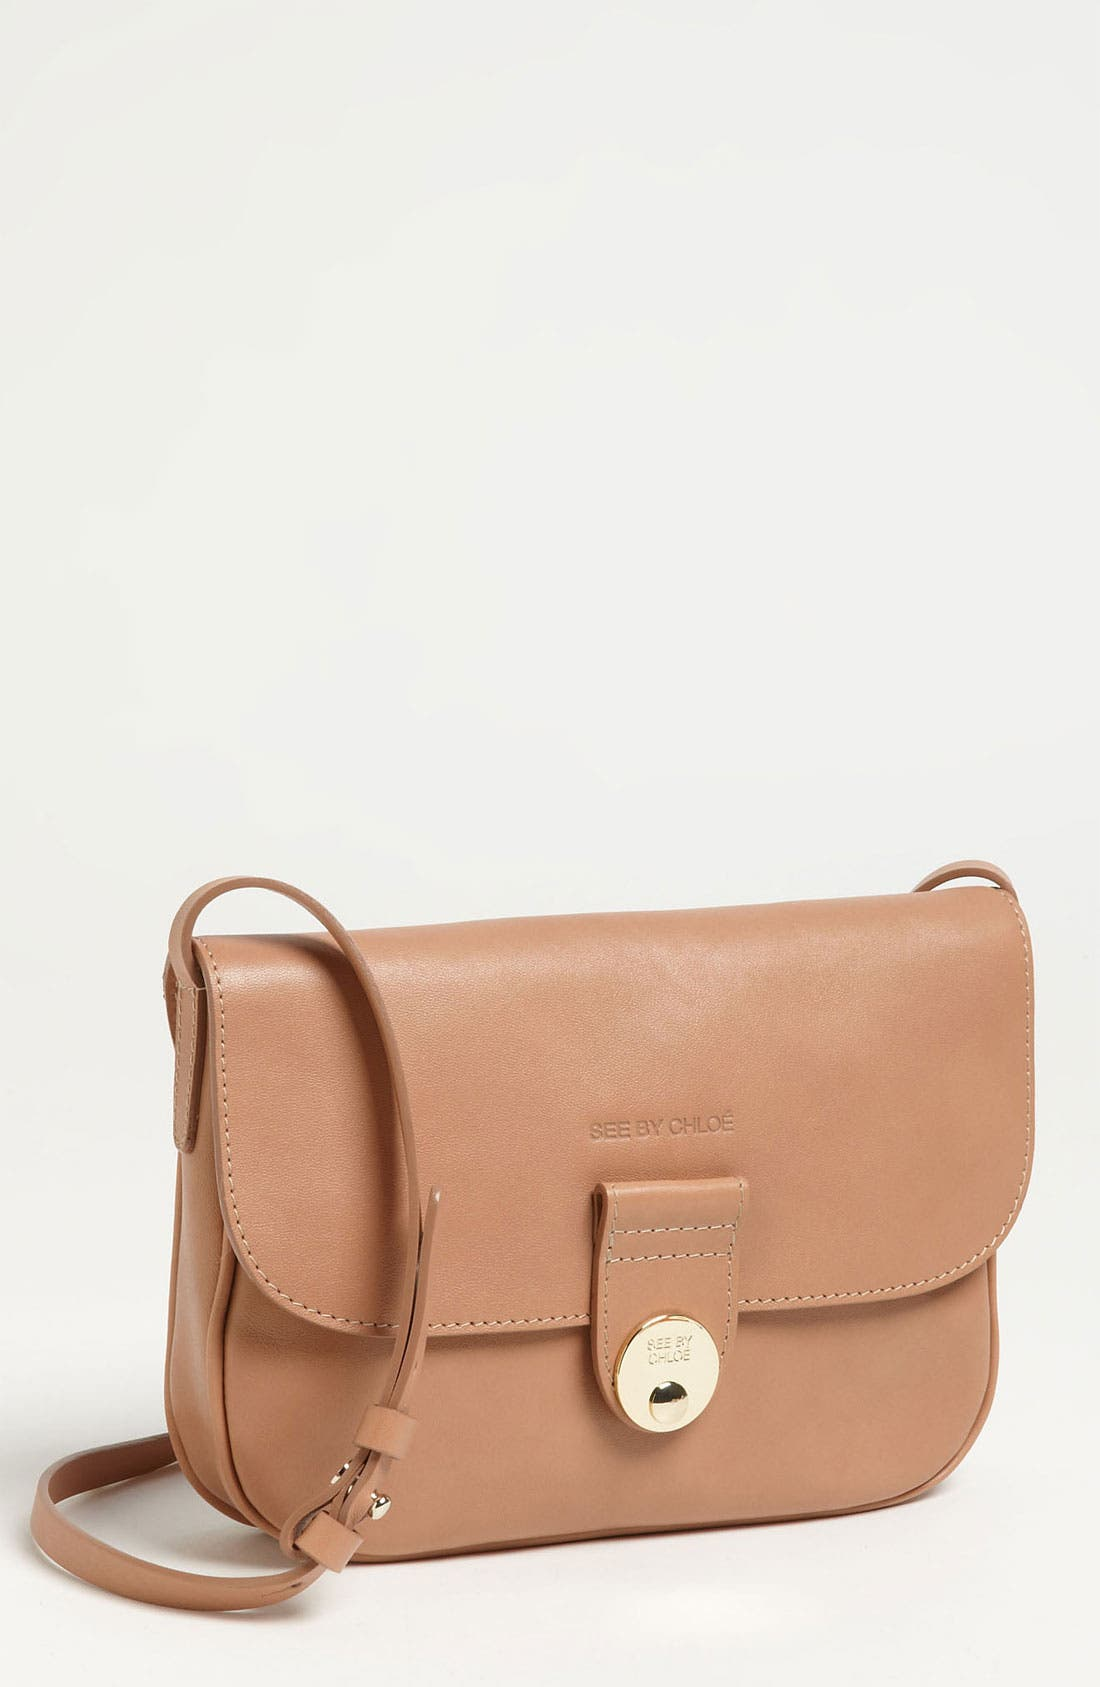 Main Image - See by Chloé 'Maani' Leather Crossbody Bag